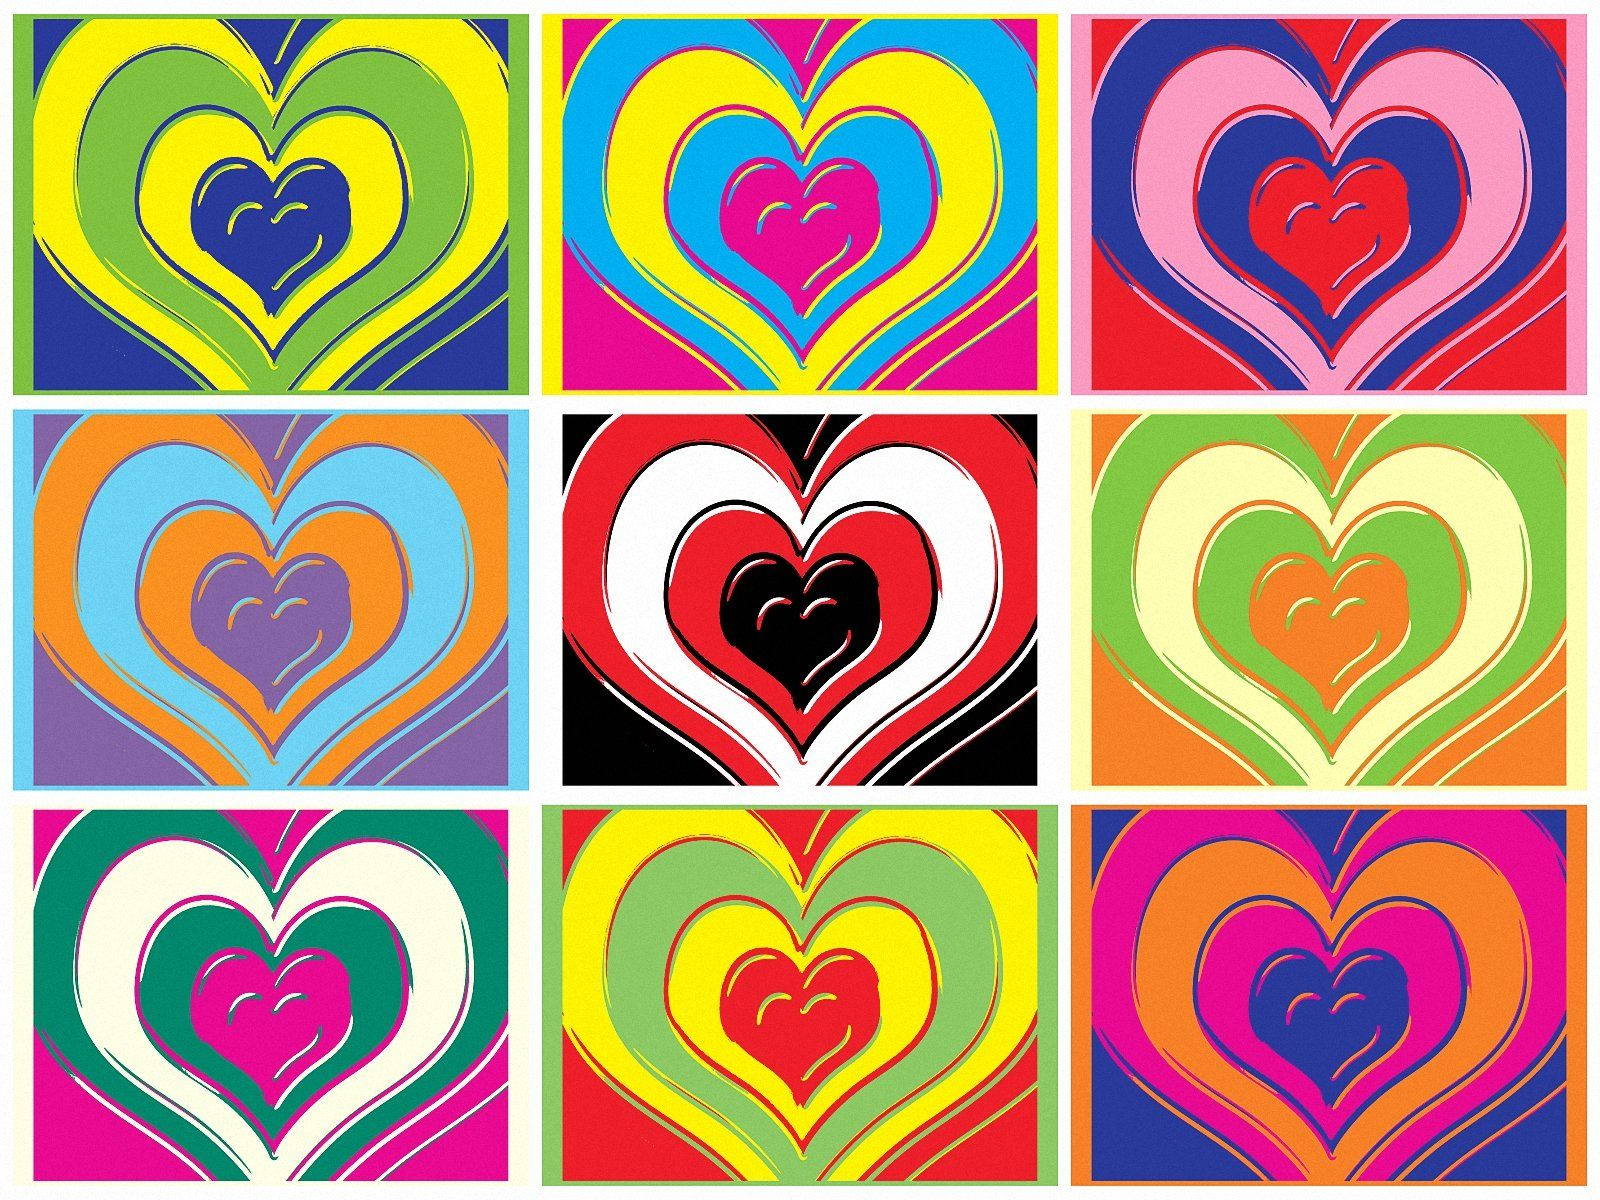 Bright Love Heart Pop Art Andy Warhol A4 Size Satin Paper